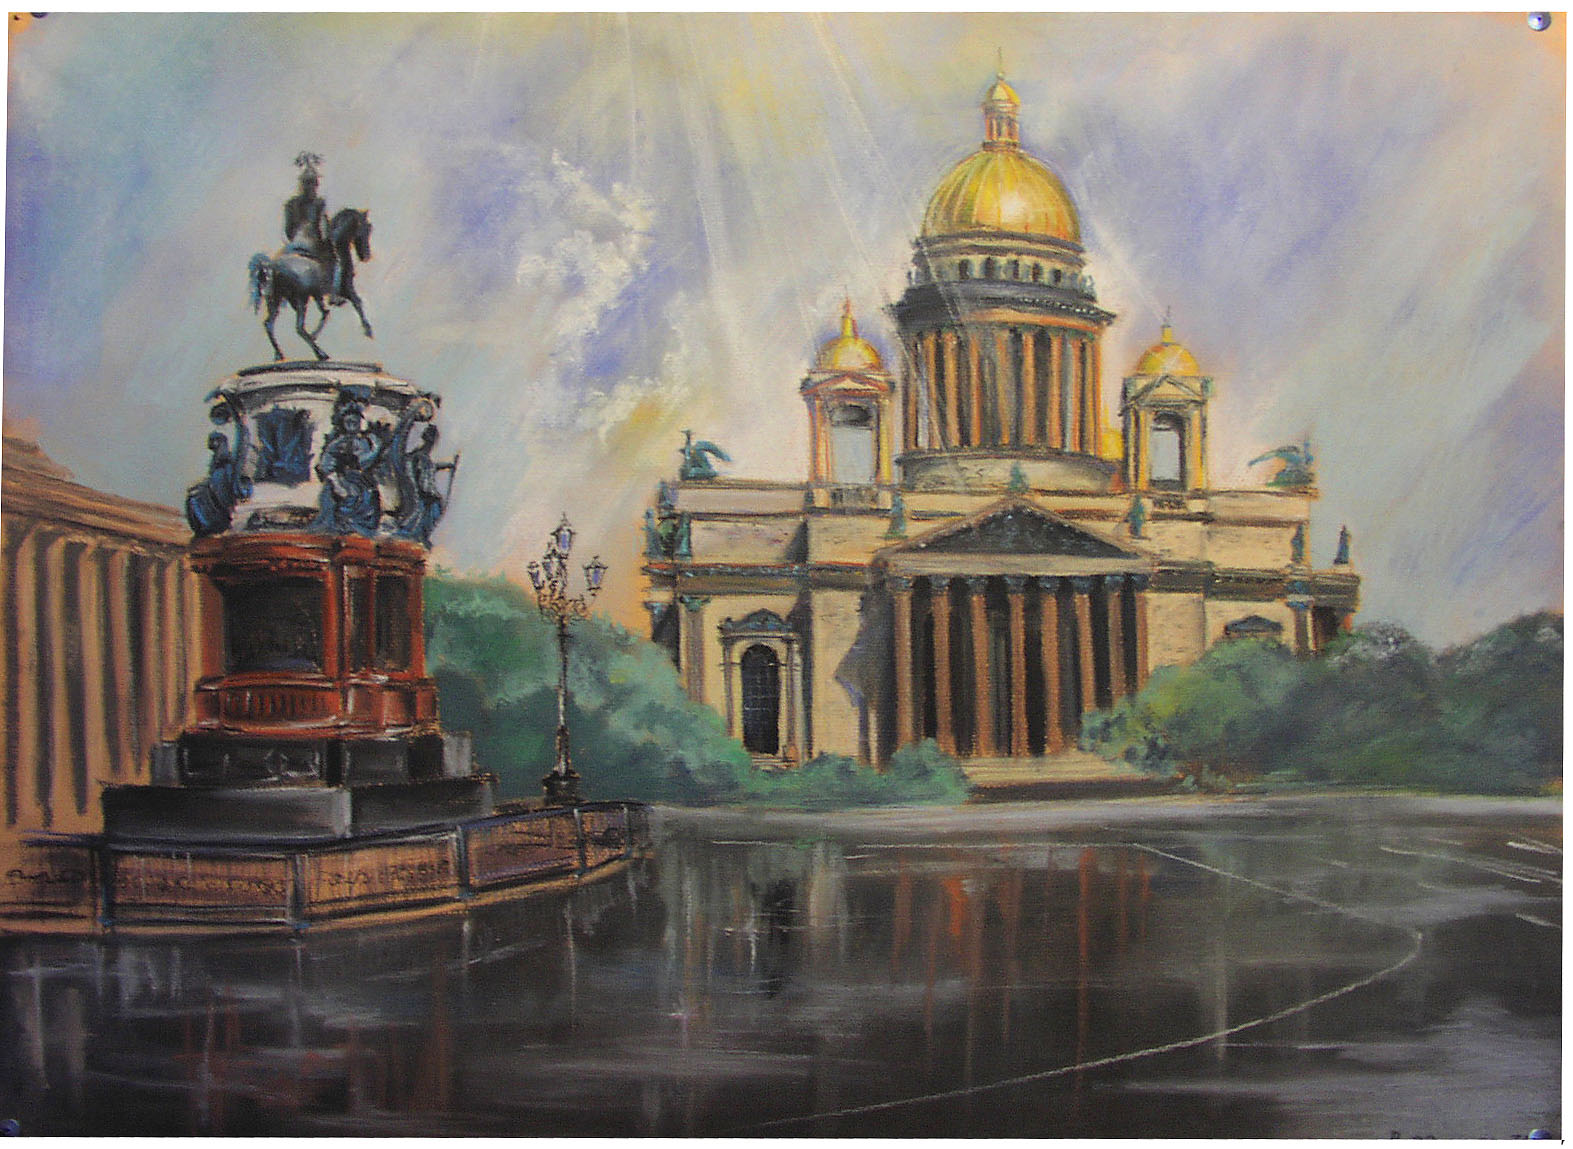 St.Petersburg art practice